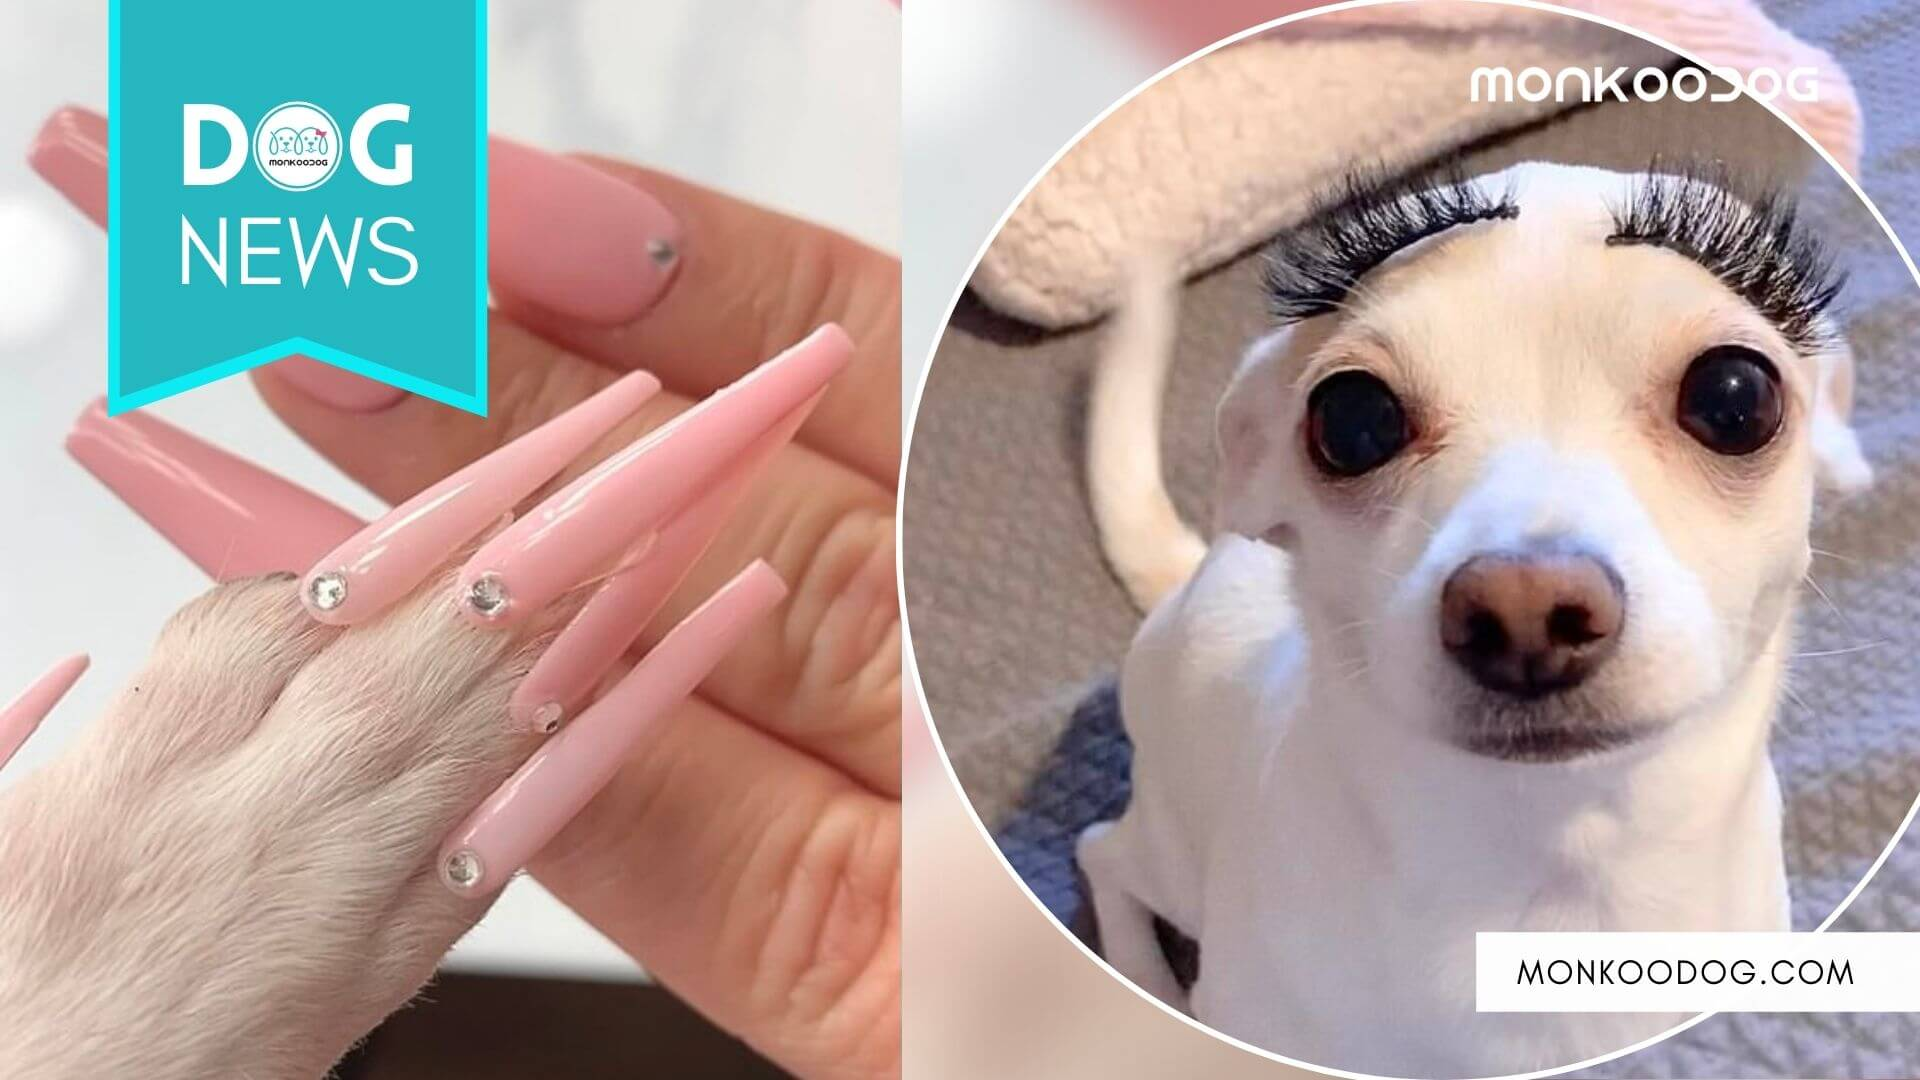 Woman Faces Animal Abuse Allegations Over Applying Fake Nails To Her Dog